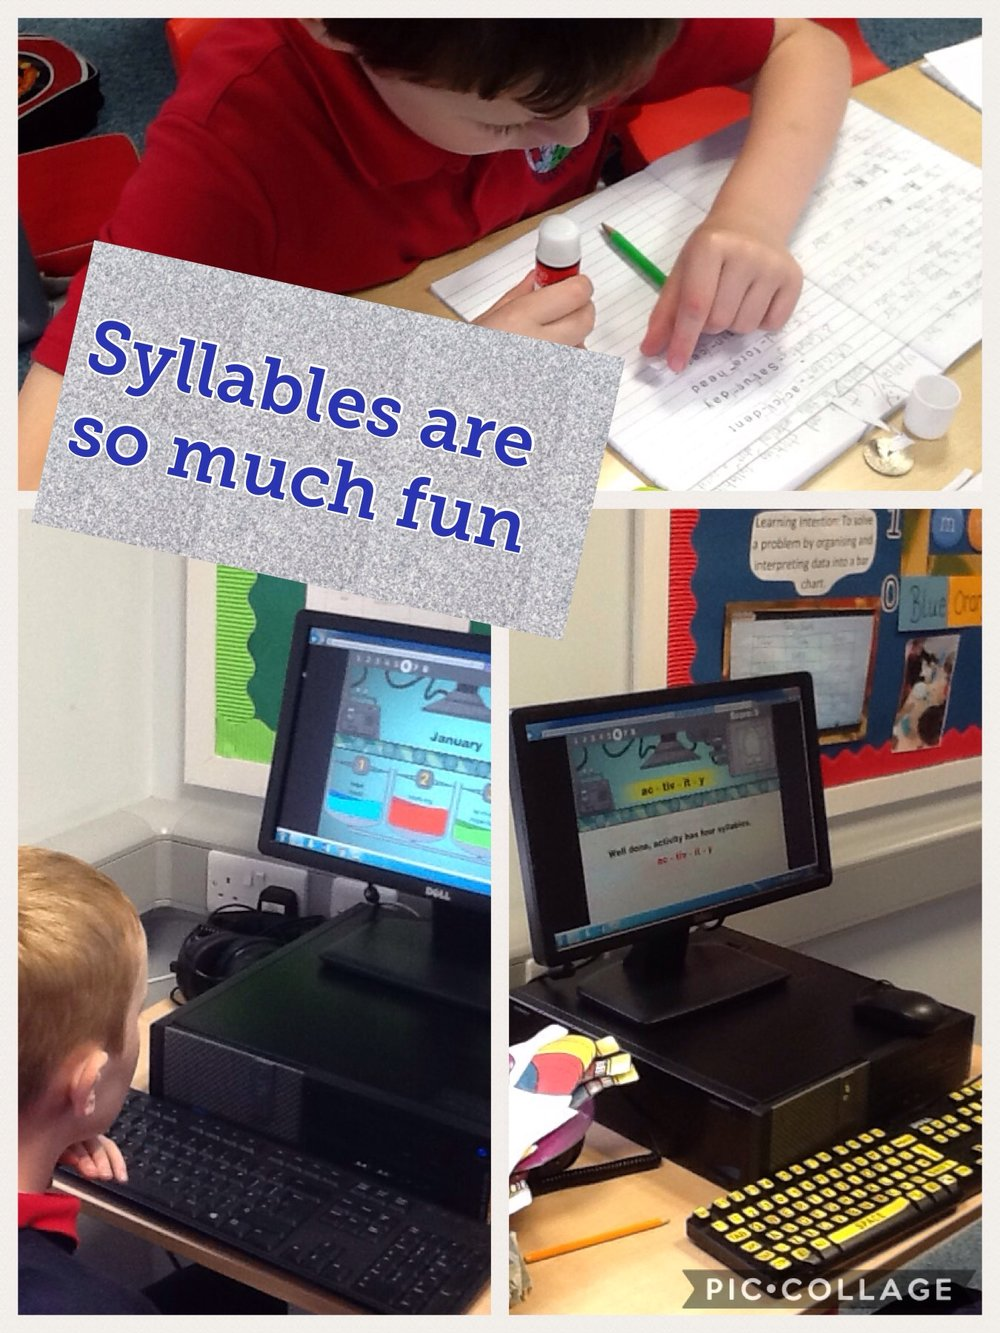 Today we are all about the syllables. We have used different techniques to learn about syllables.... did you know if you place the palm of your hand under your chin while you say a word, that the amount of times your hand moves is the amount of syllables a word has. Why not give it a go!!  Check out our useful links as there is a great game we have been playing in class to help us with our syllables.